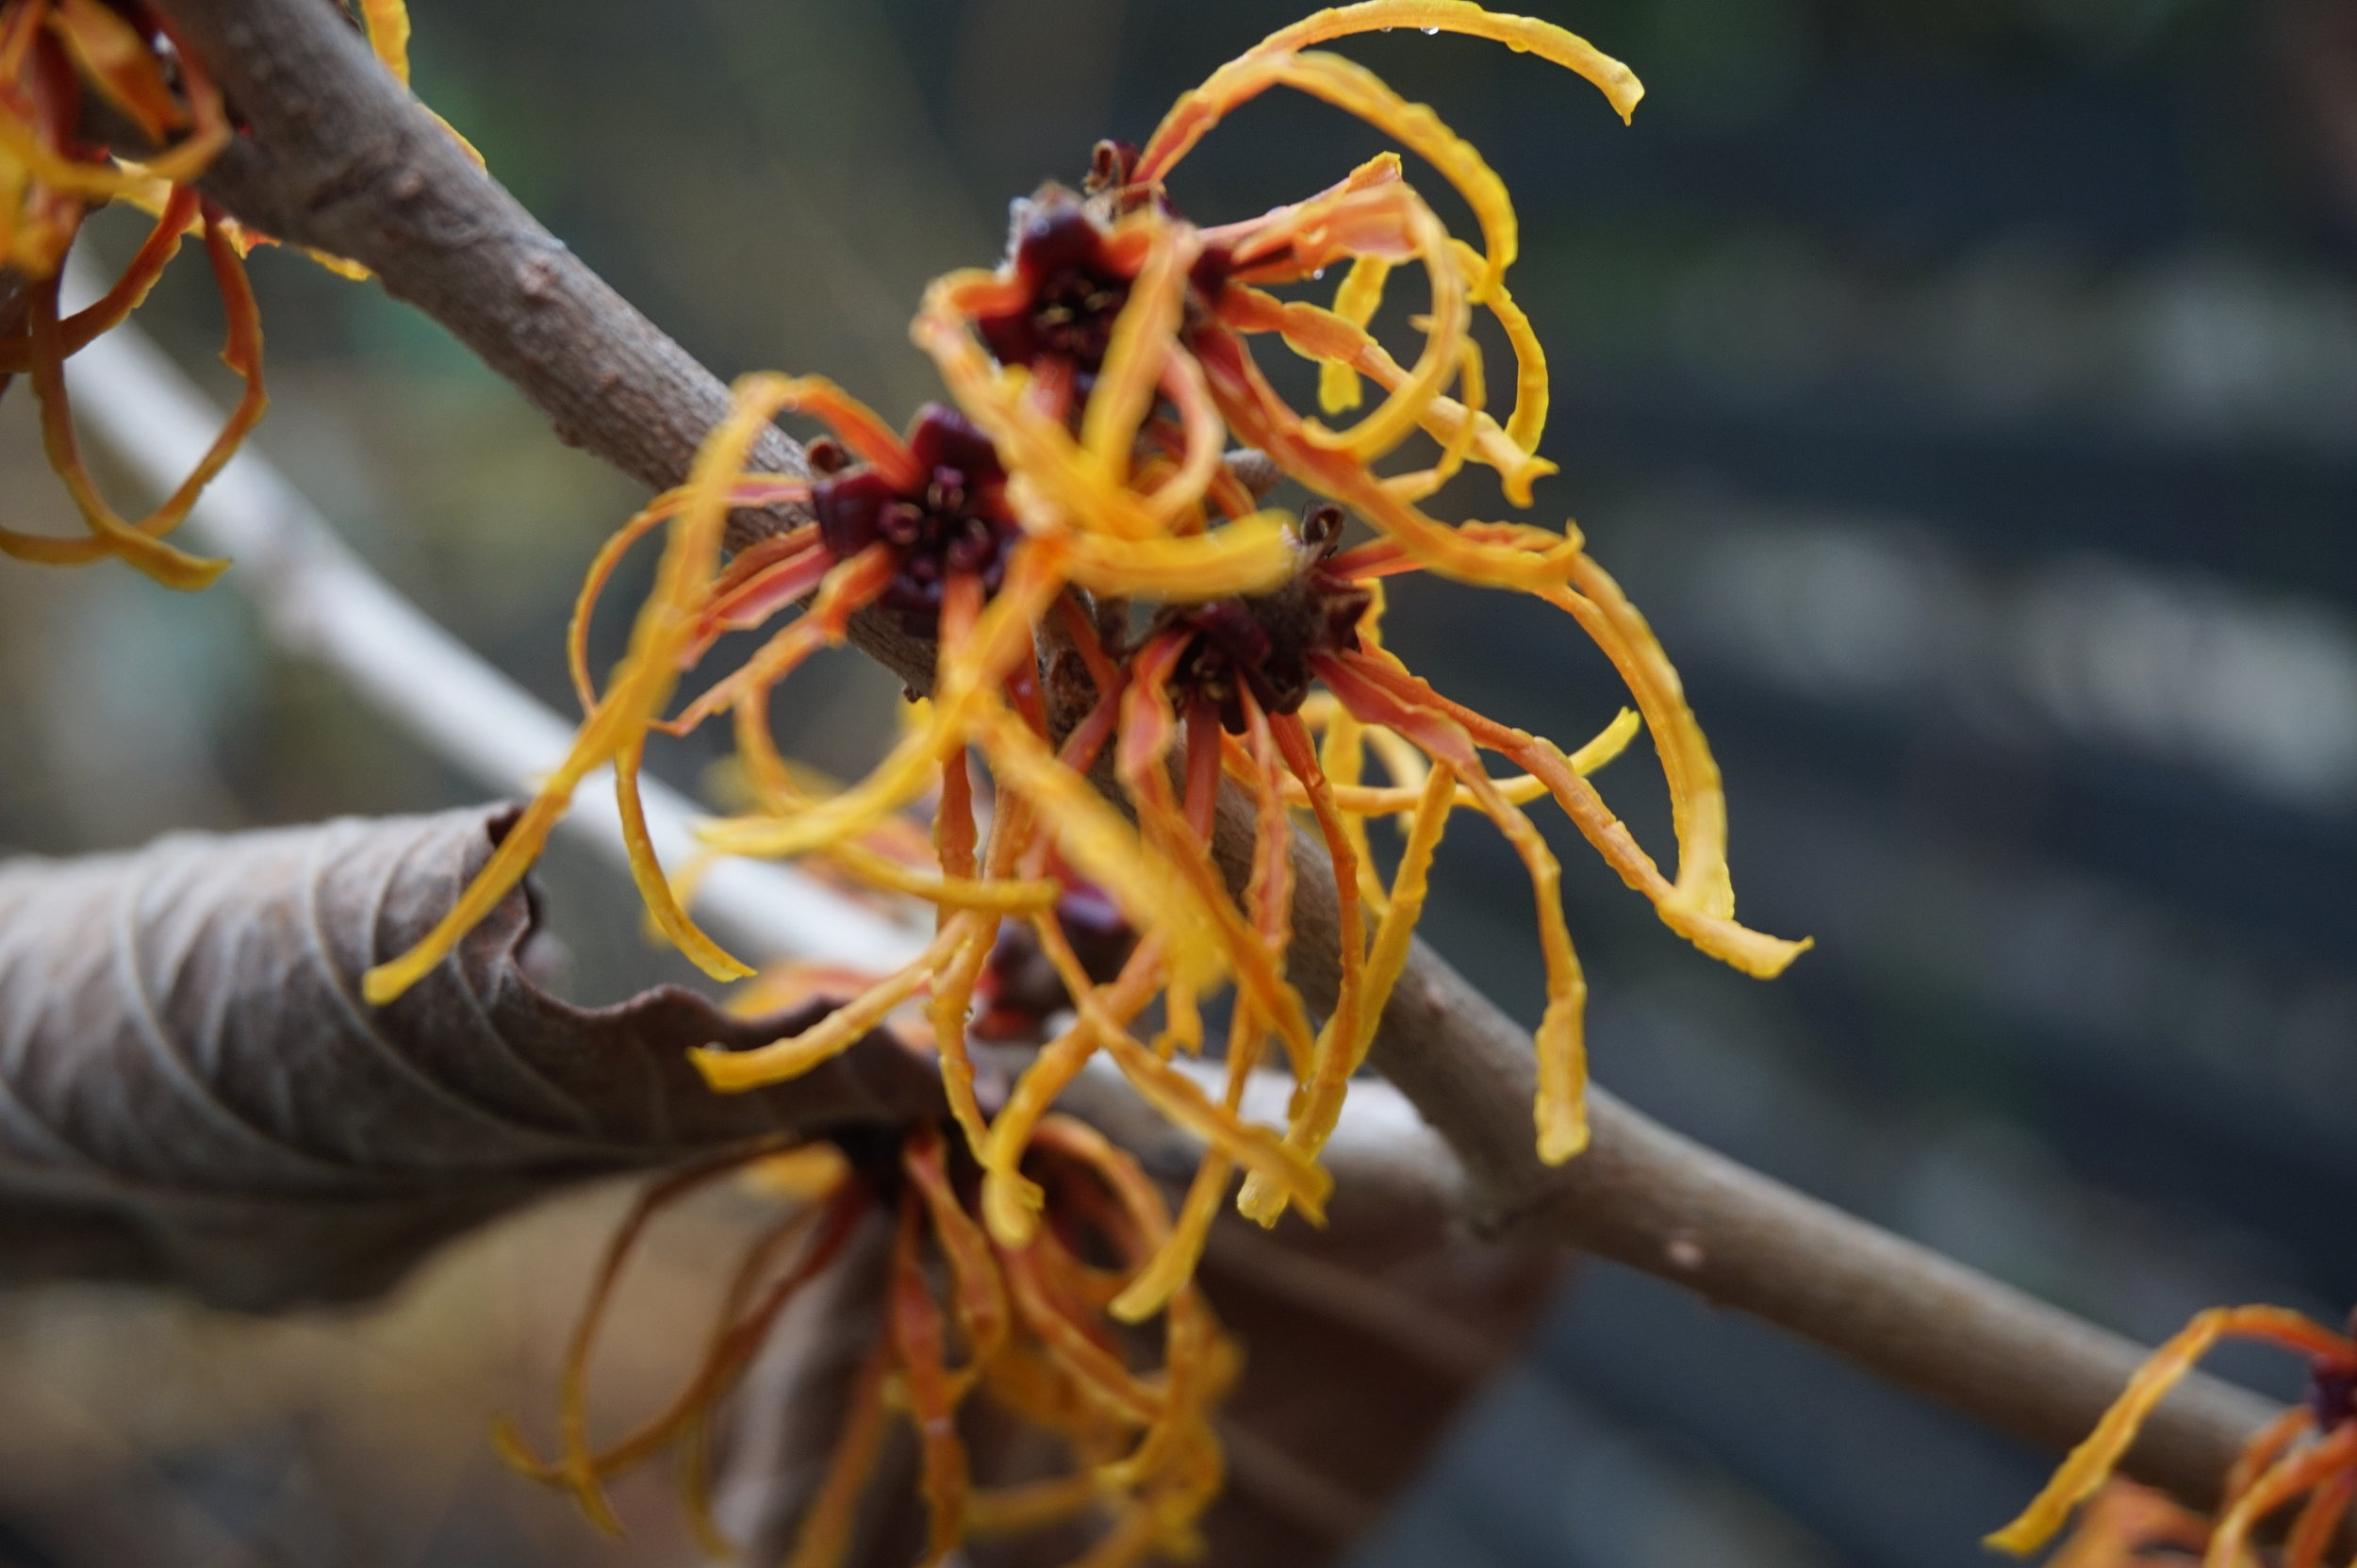 Hamamelis × intermedia 'Jelena' - a beautiful 'rust' coloured witch hazel shining out in the gloom.